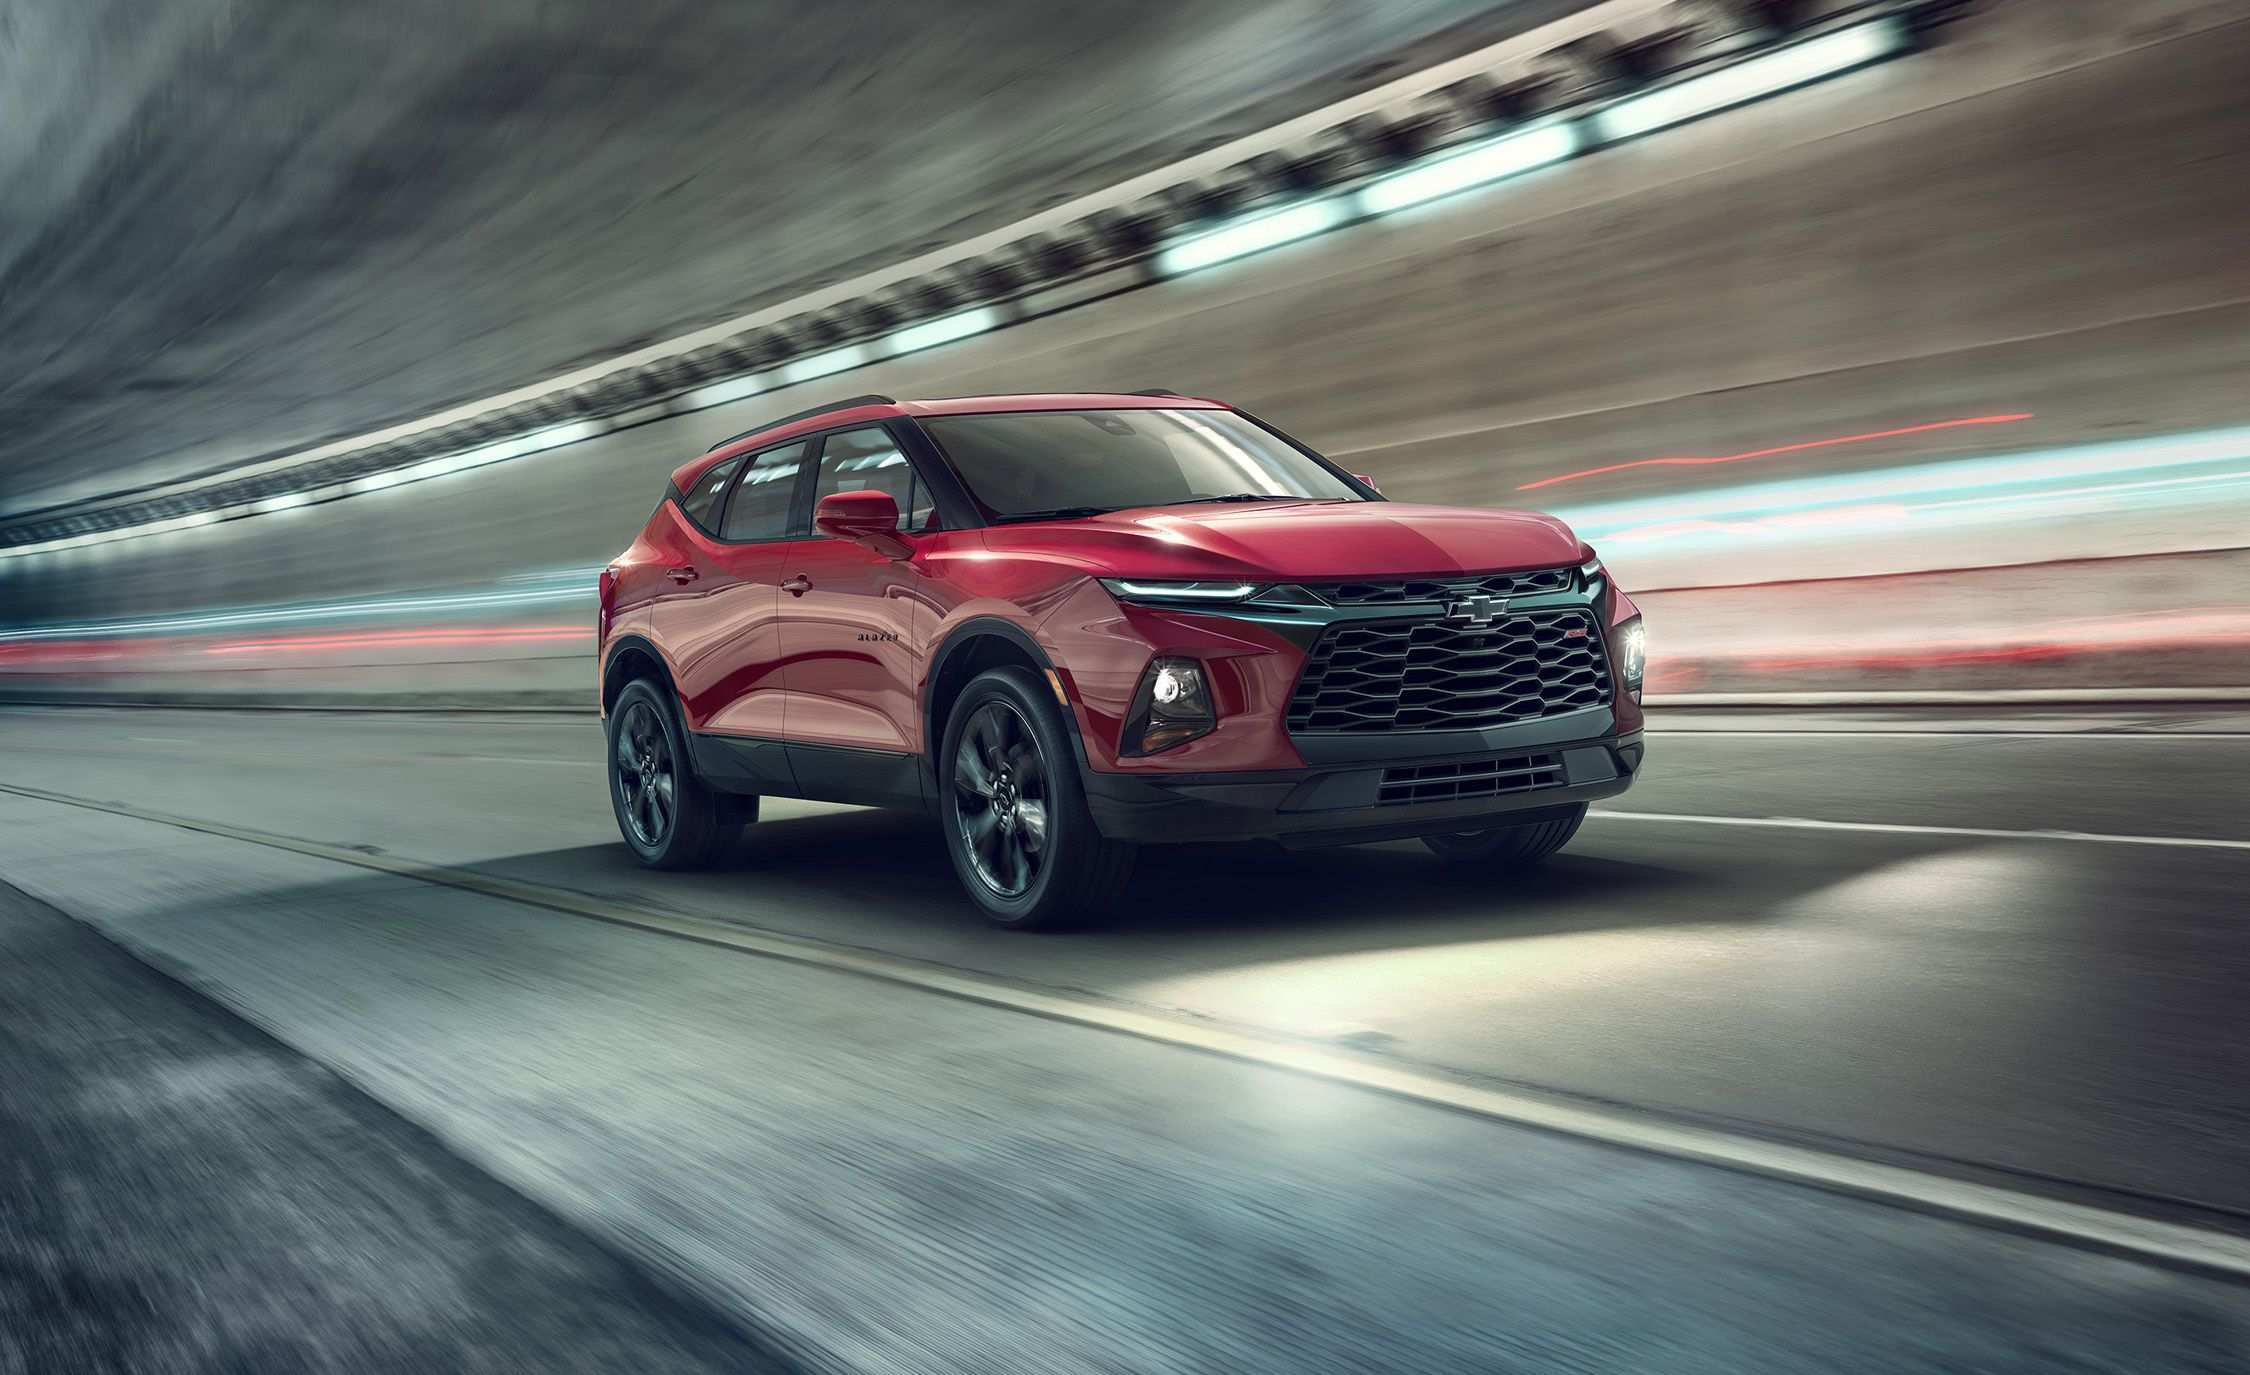 55 Best Review 2020 Chevy Blazer Exterior and Interior for 2020 Chevy Blazer